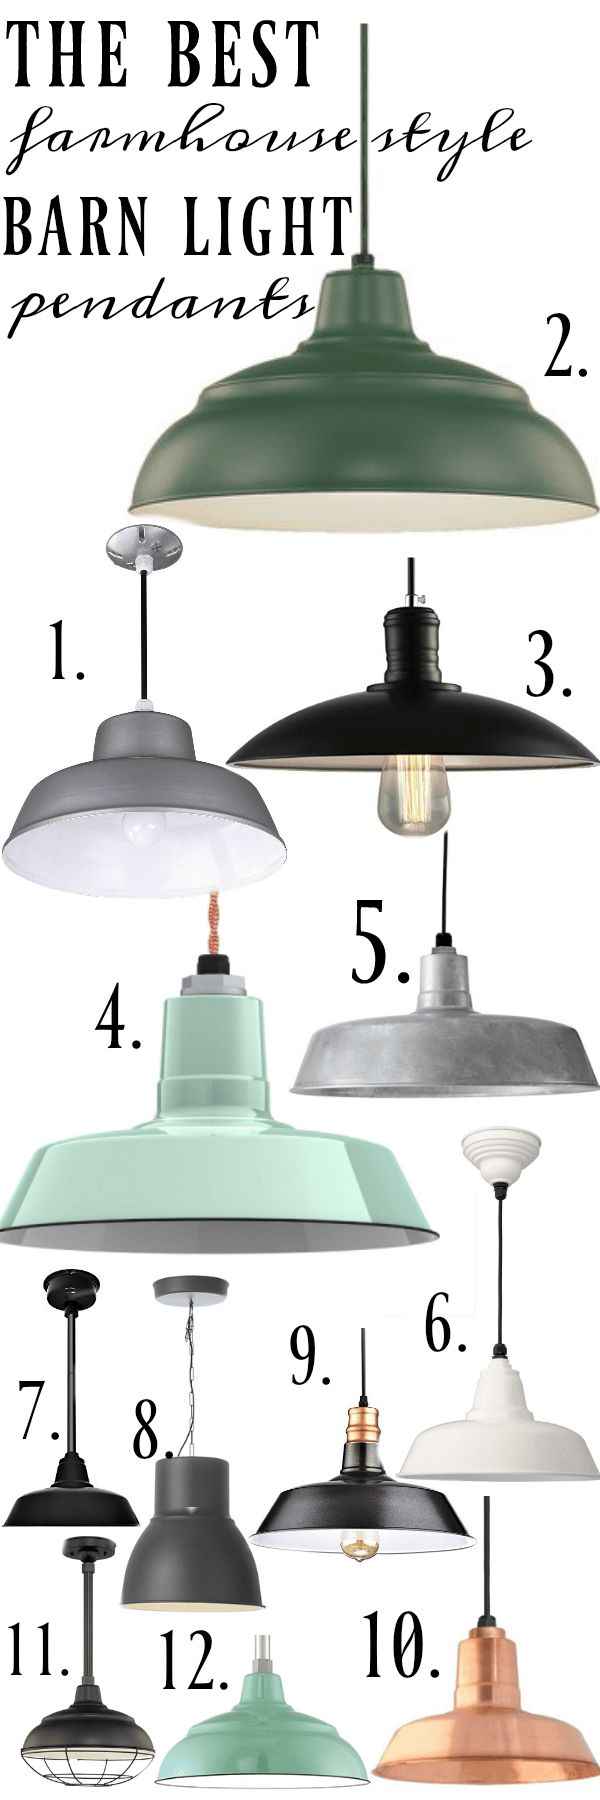 25 Best Ideas About Barn Lighting On Pinterest Industrial Light Fixtures